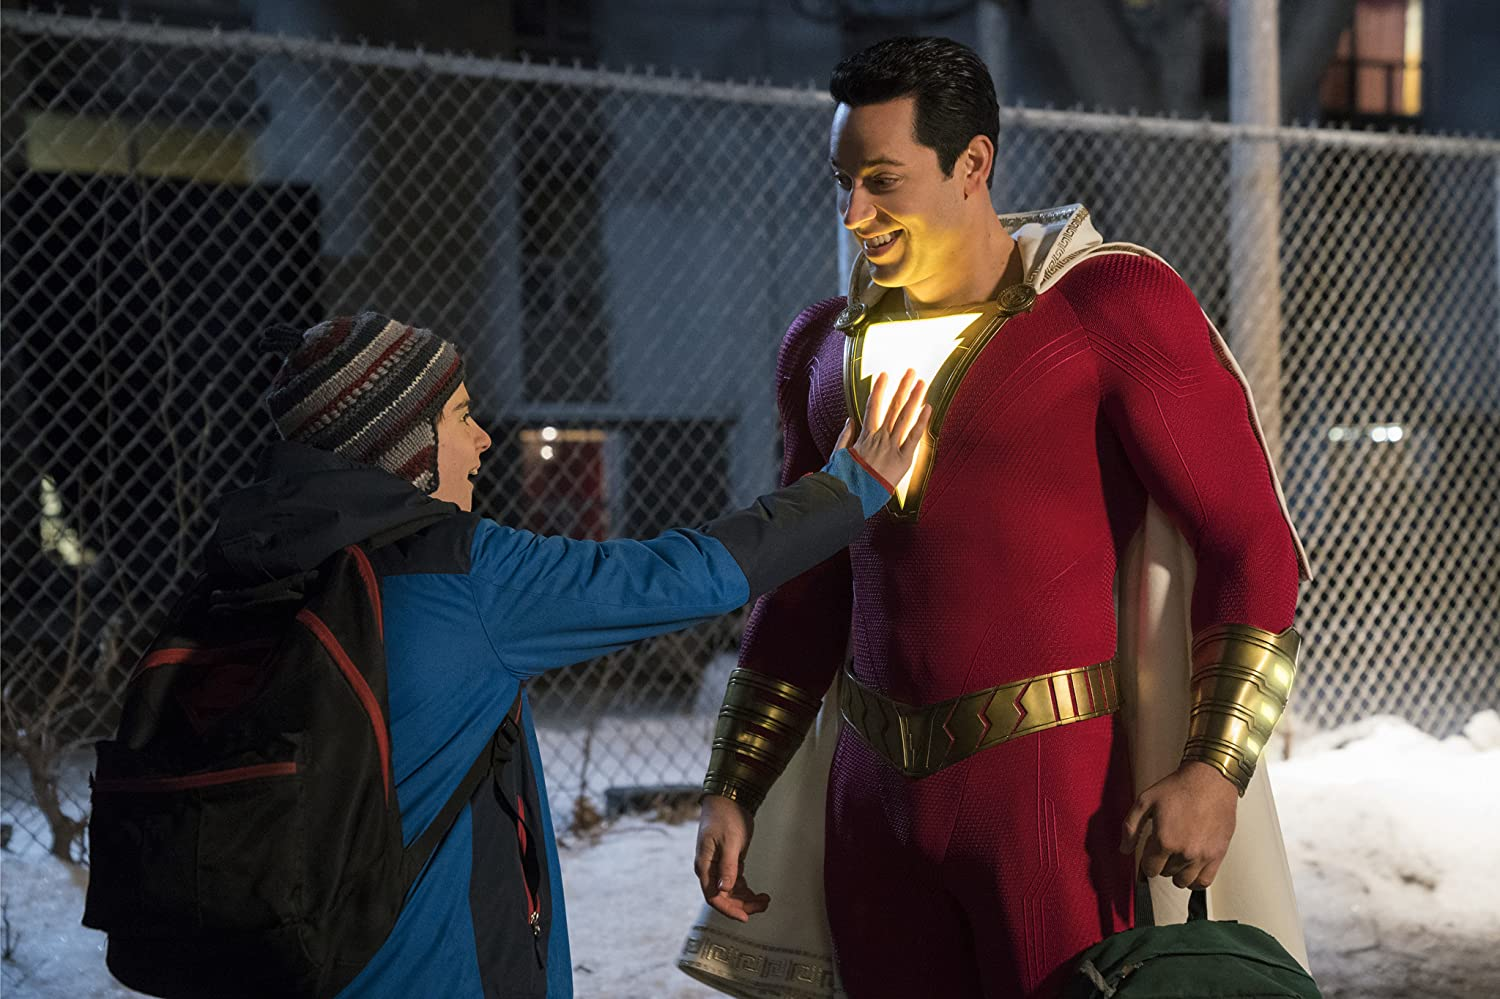 Jack Dylan Grazer and Zachary Levi / Shazam! / DC Comics and Warner Bros. Pictures. © 2019. All rights reserved.